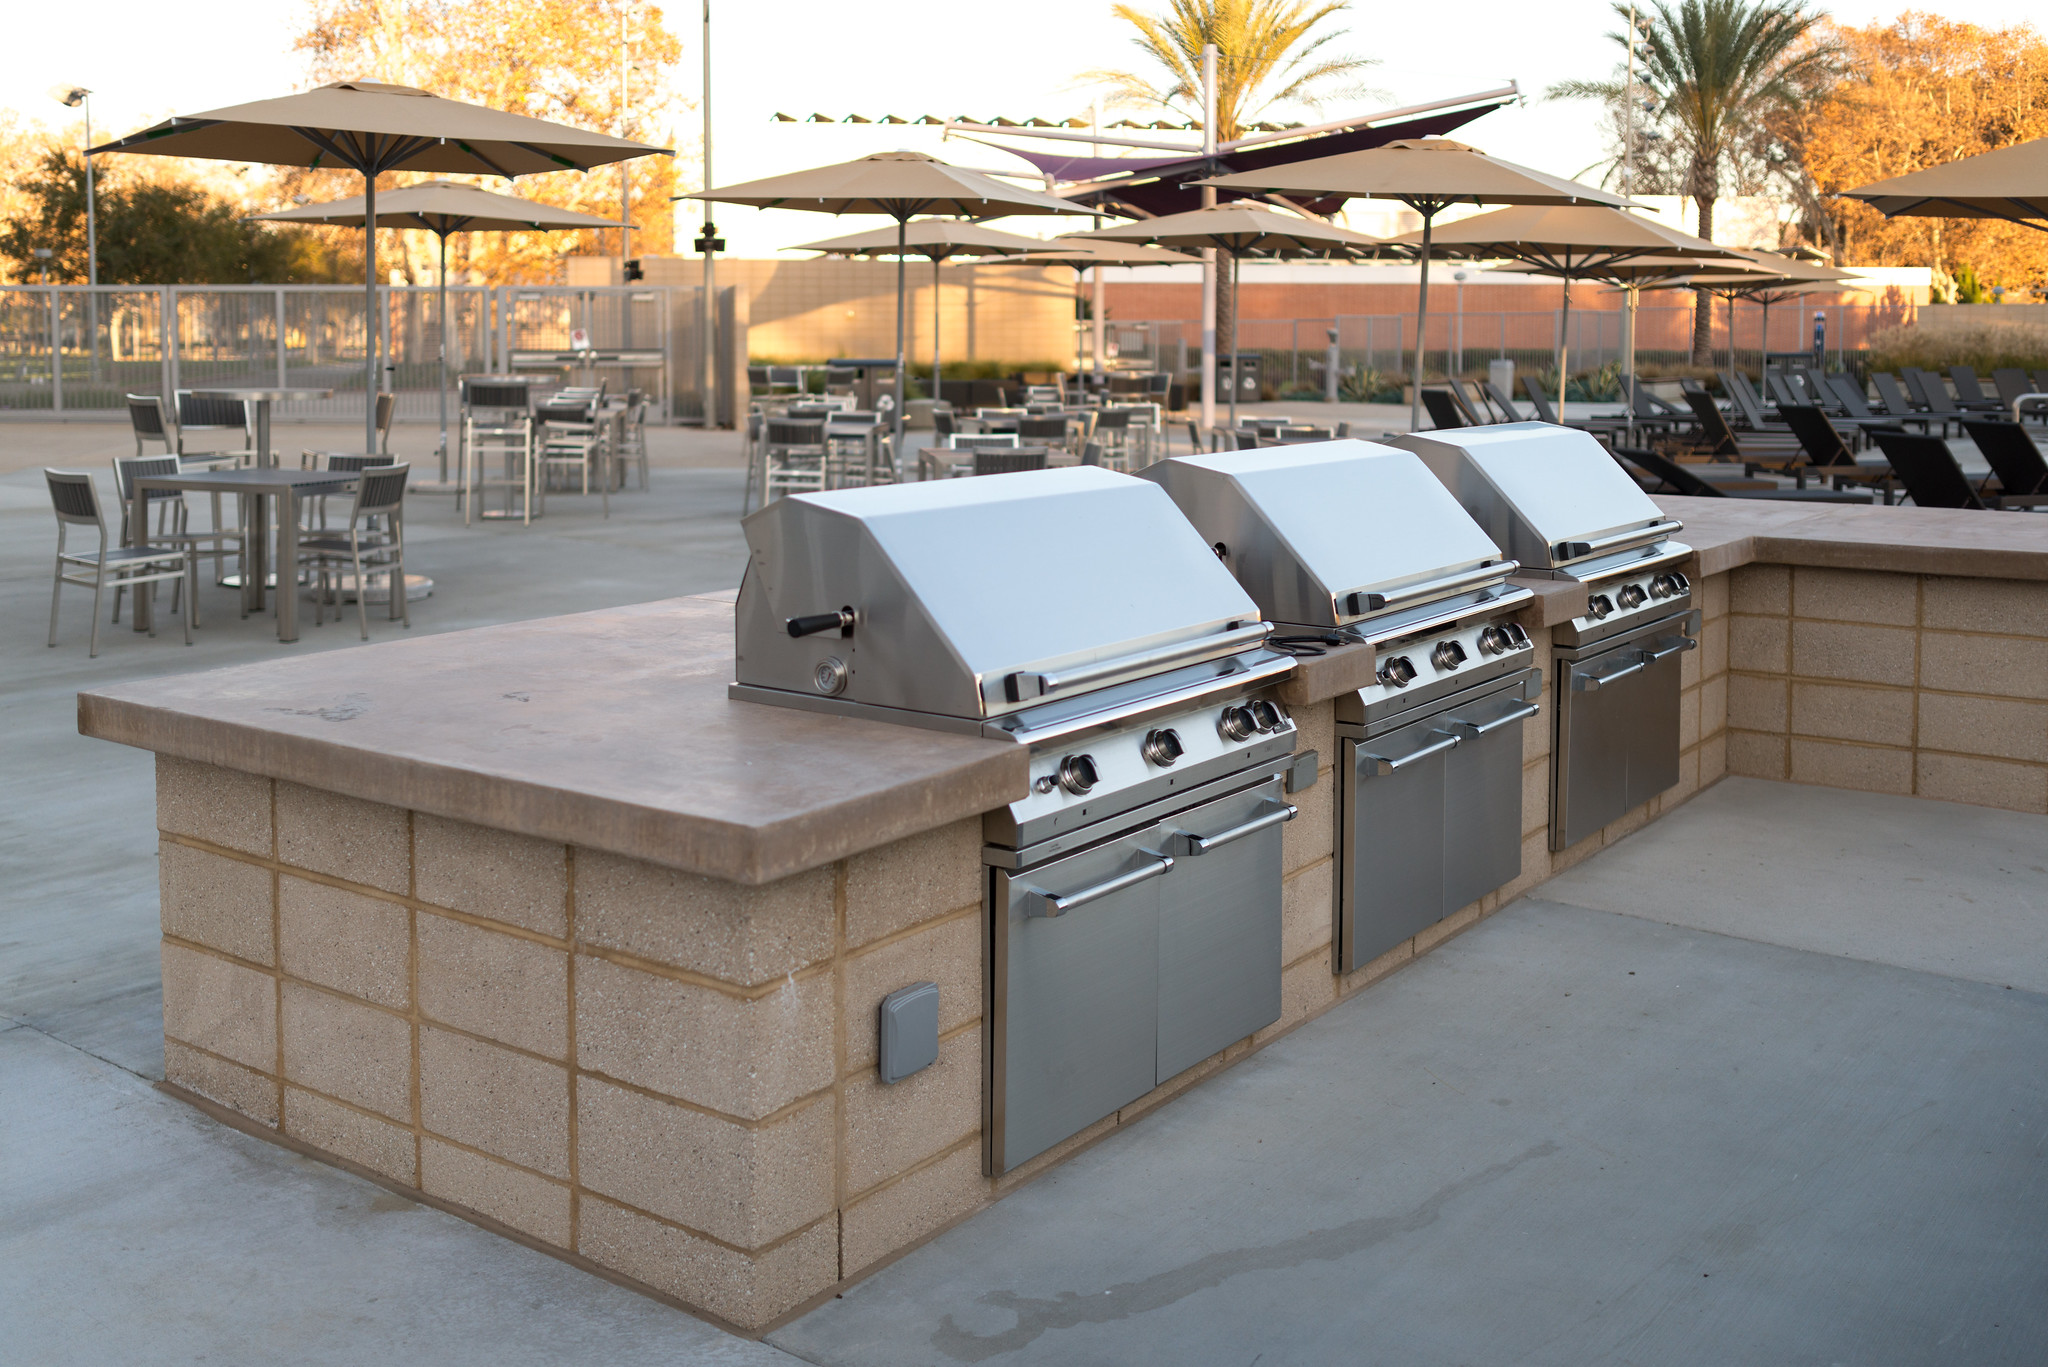 Grill with a view of the BRIC pool